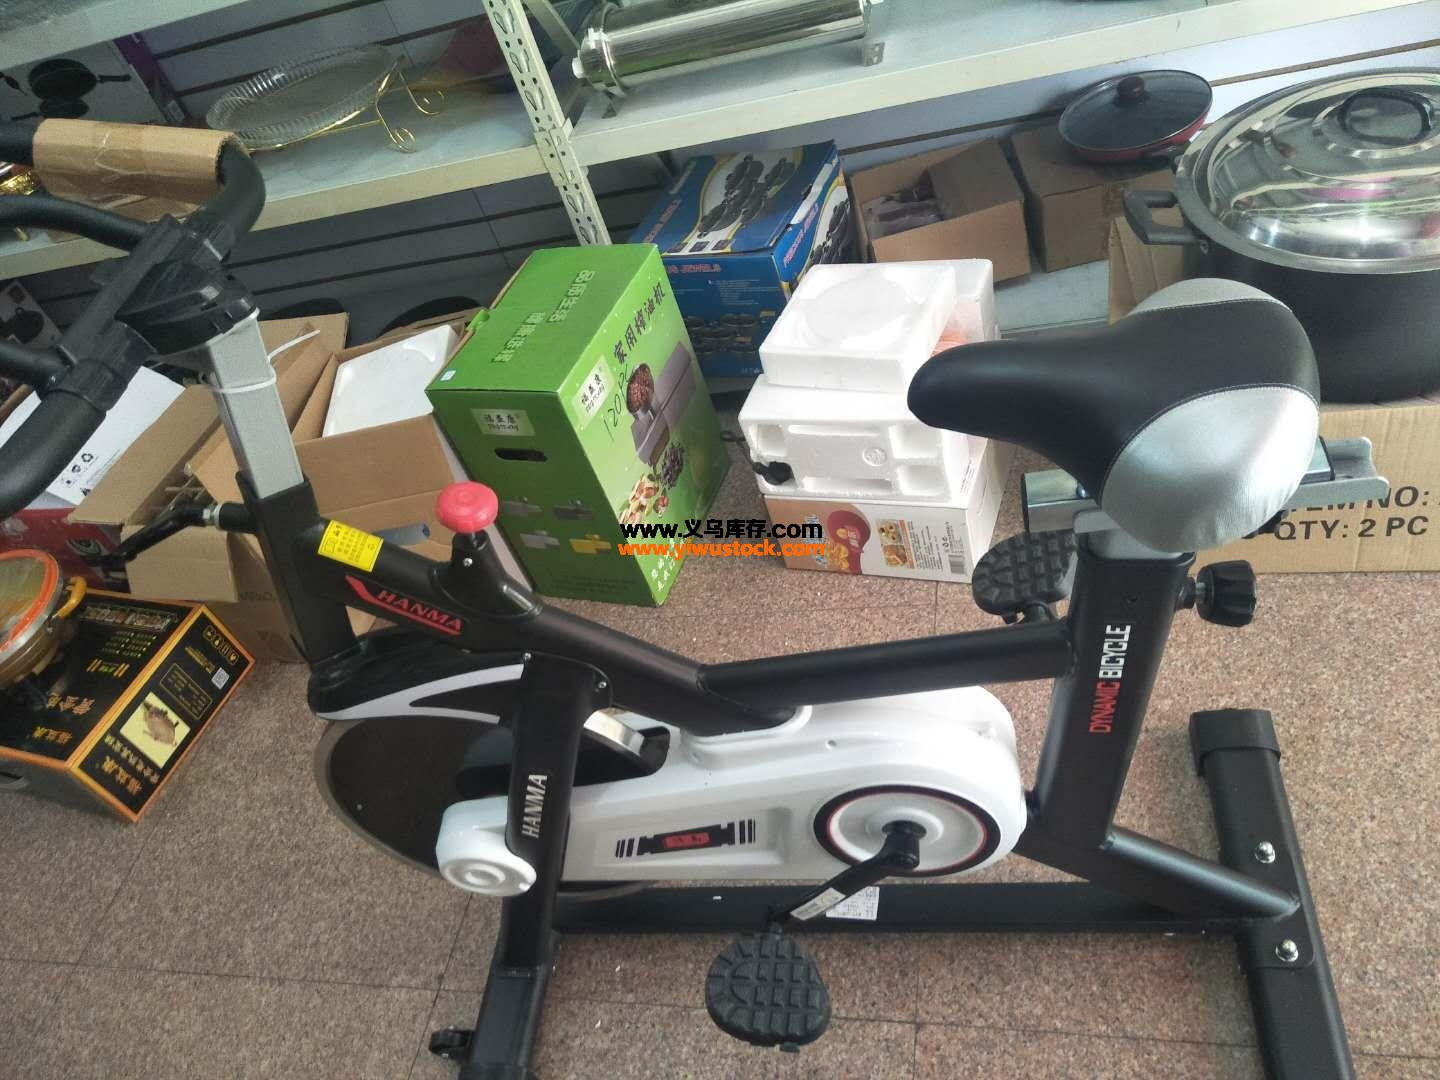 300 high-end fitness equipment for sale